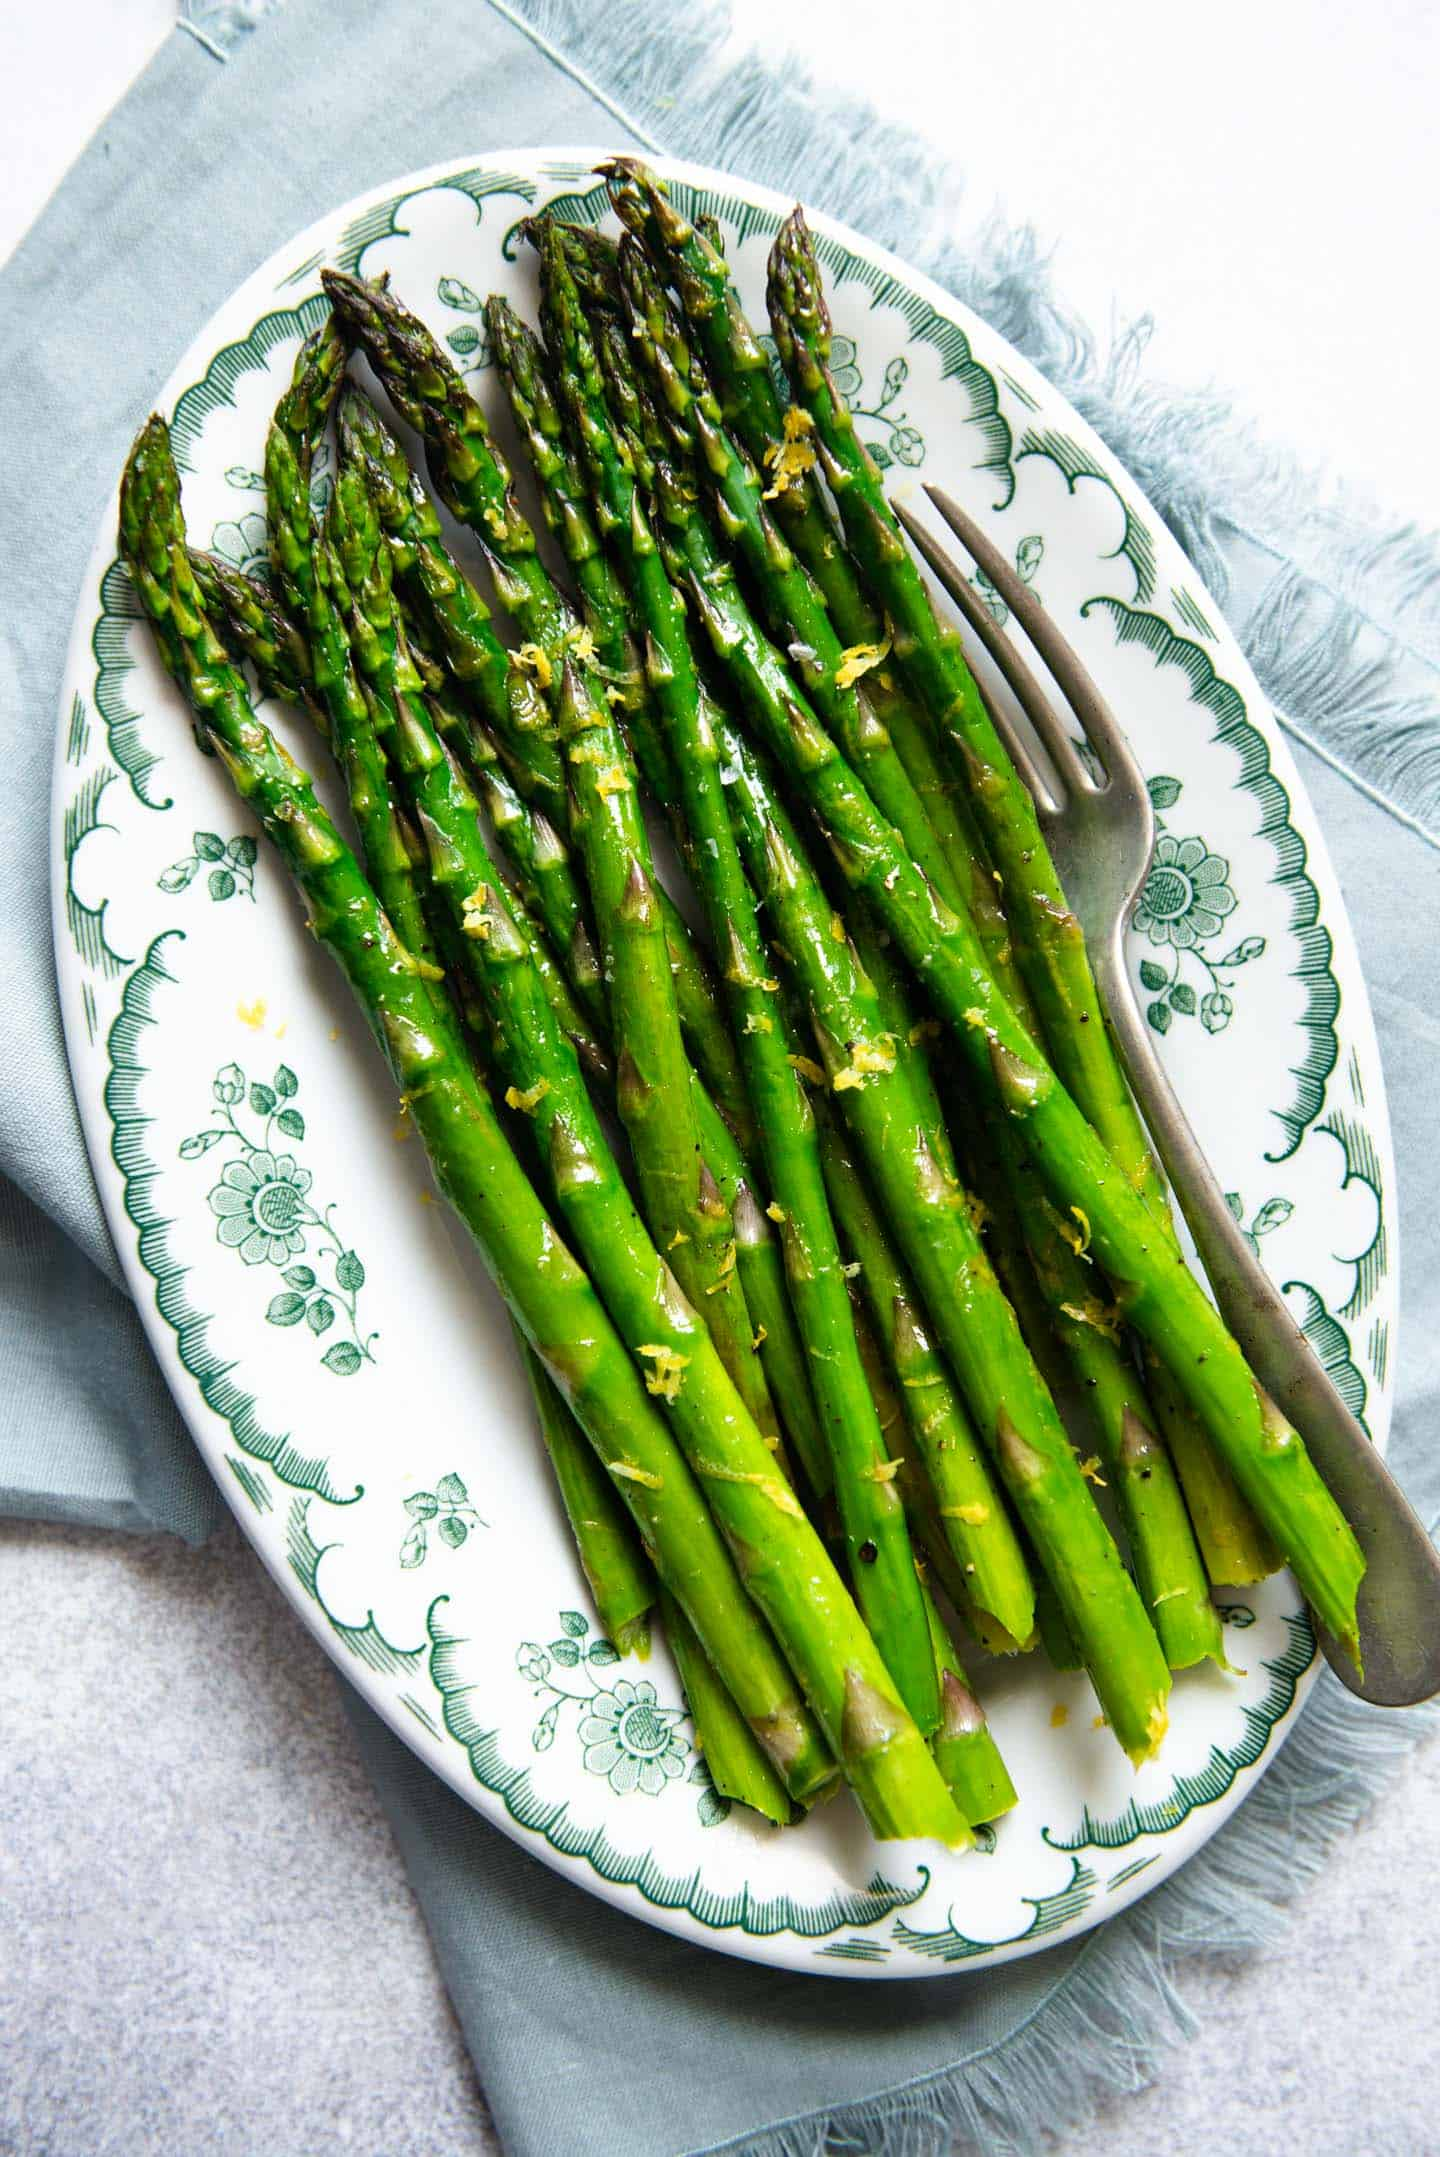 How To Roast Asparagus 5 Ingredients Healthy Nibbles